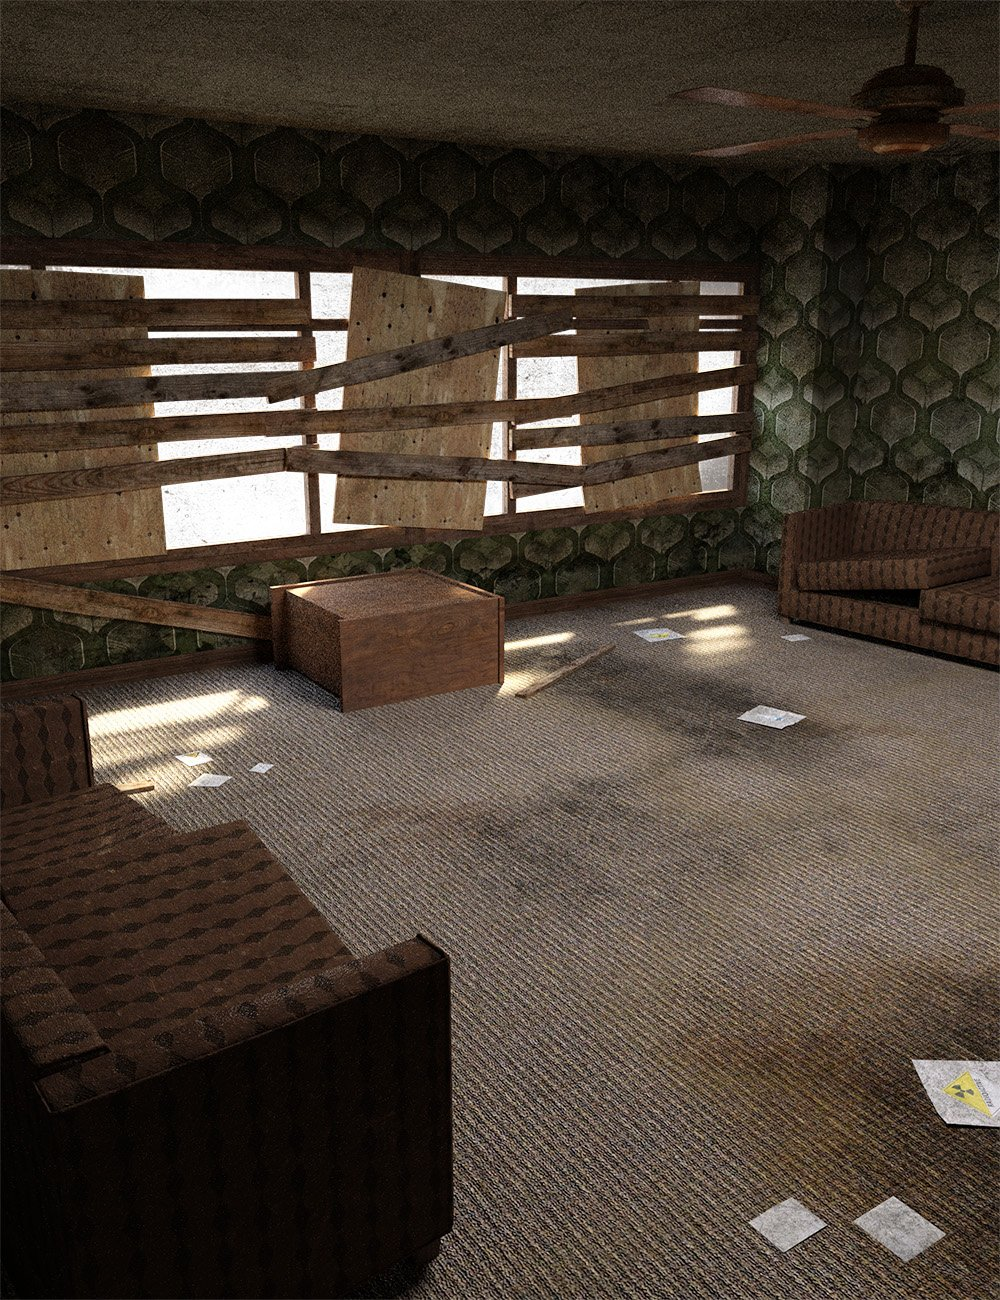 Post Apocalyptic Living Room by: , 3D Models by Daz 3D